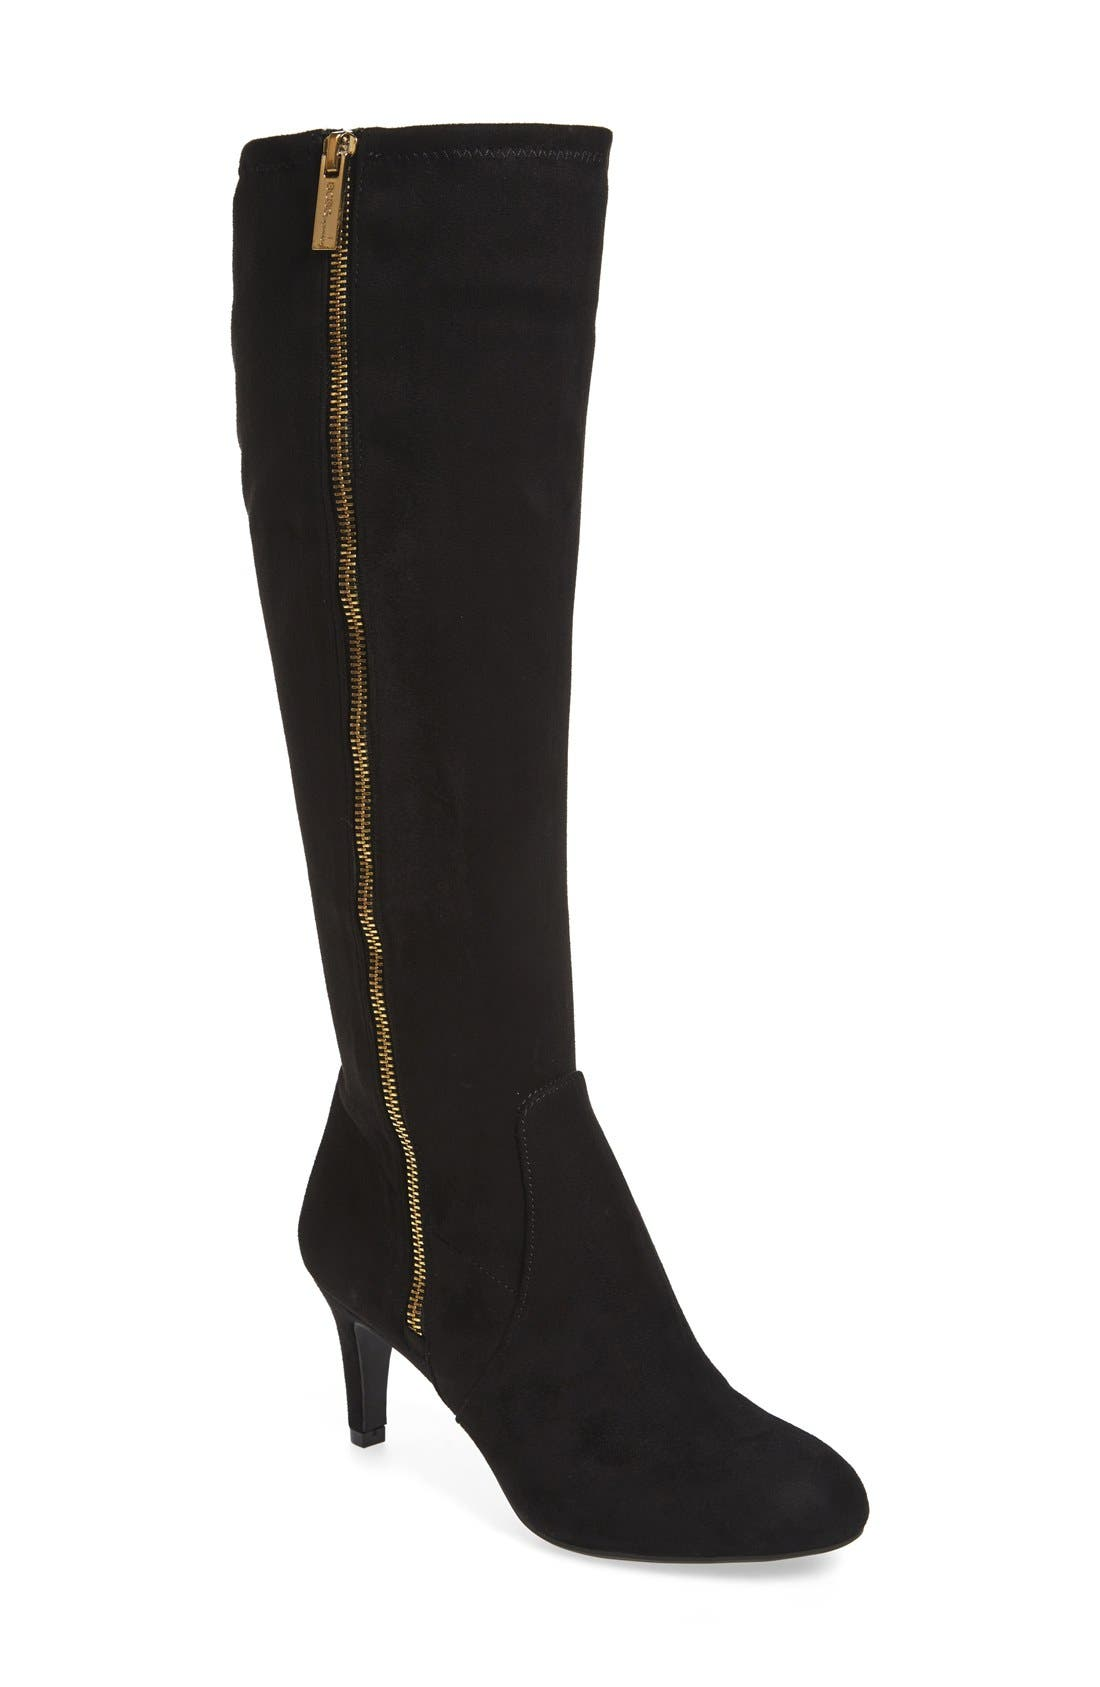 Alternate Image 1 Selected - BCBGeneration 'Rocko' Tall Boot (Women)